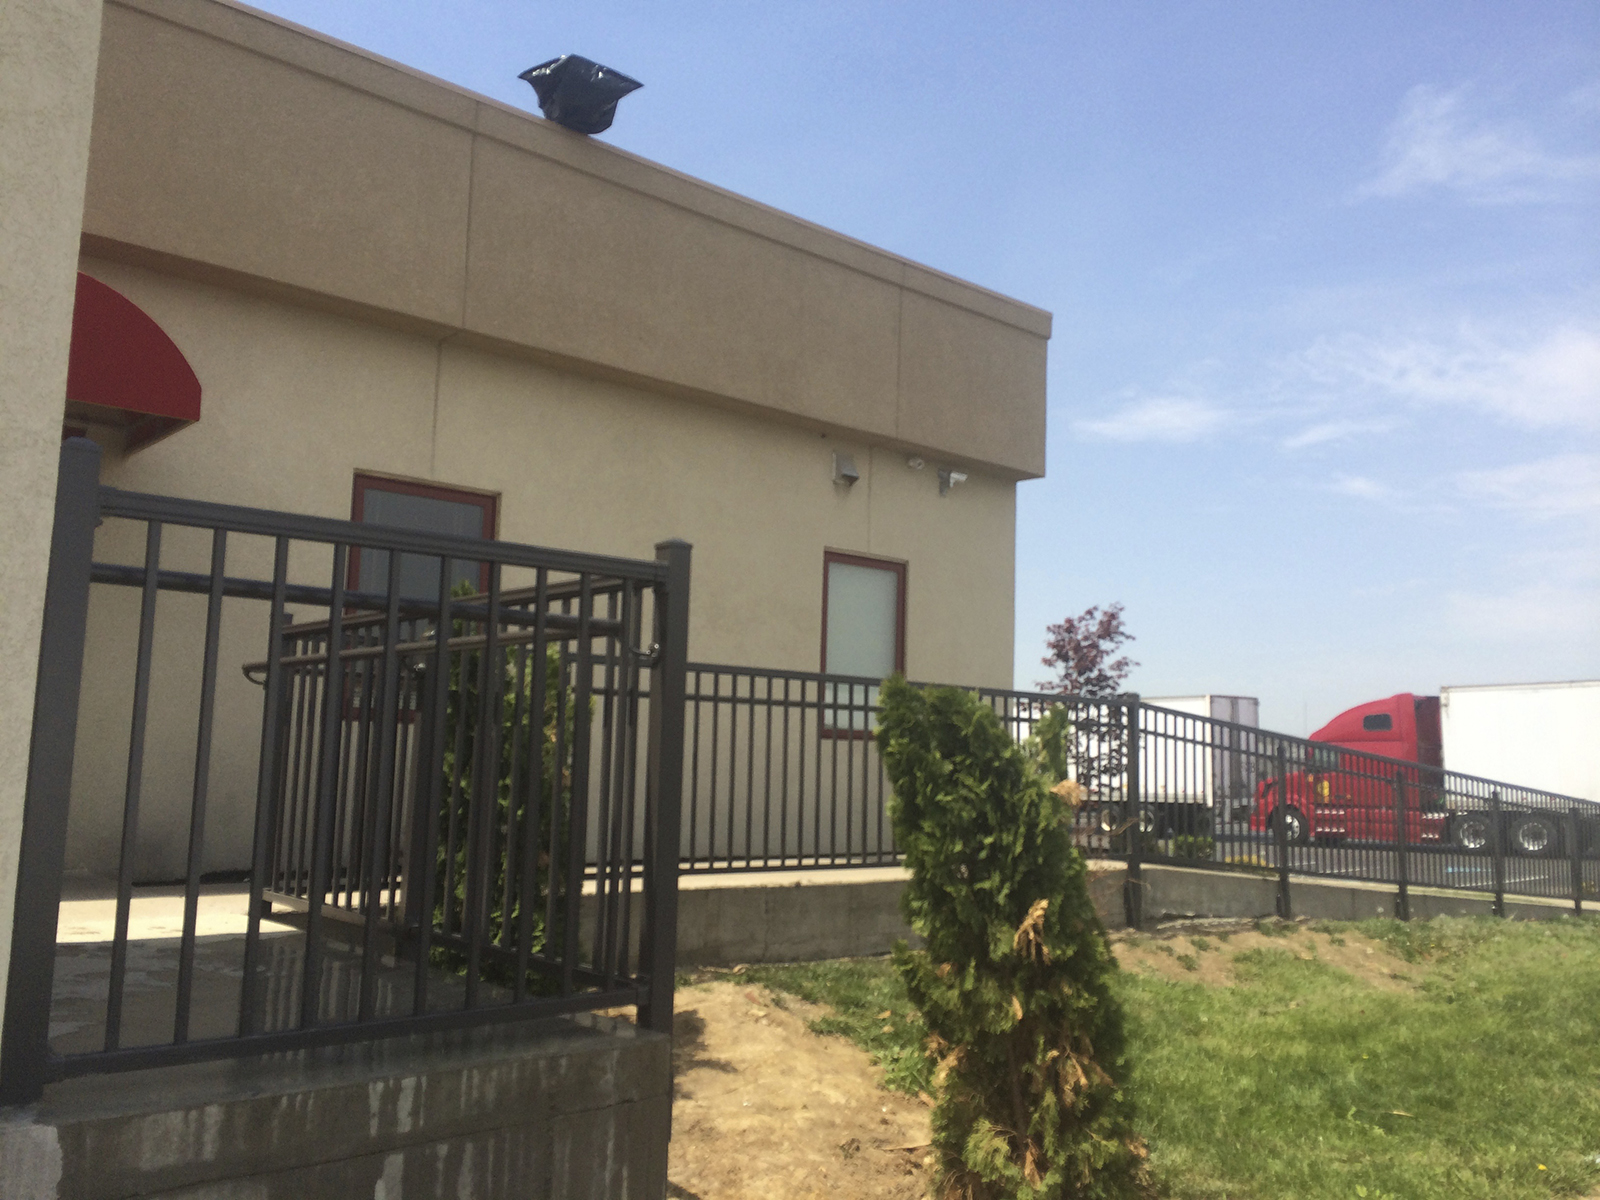 commerical fence company